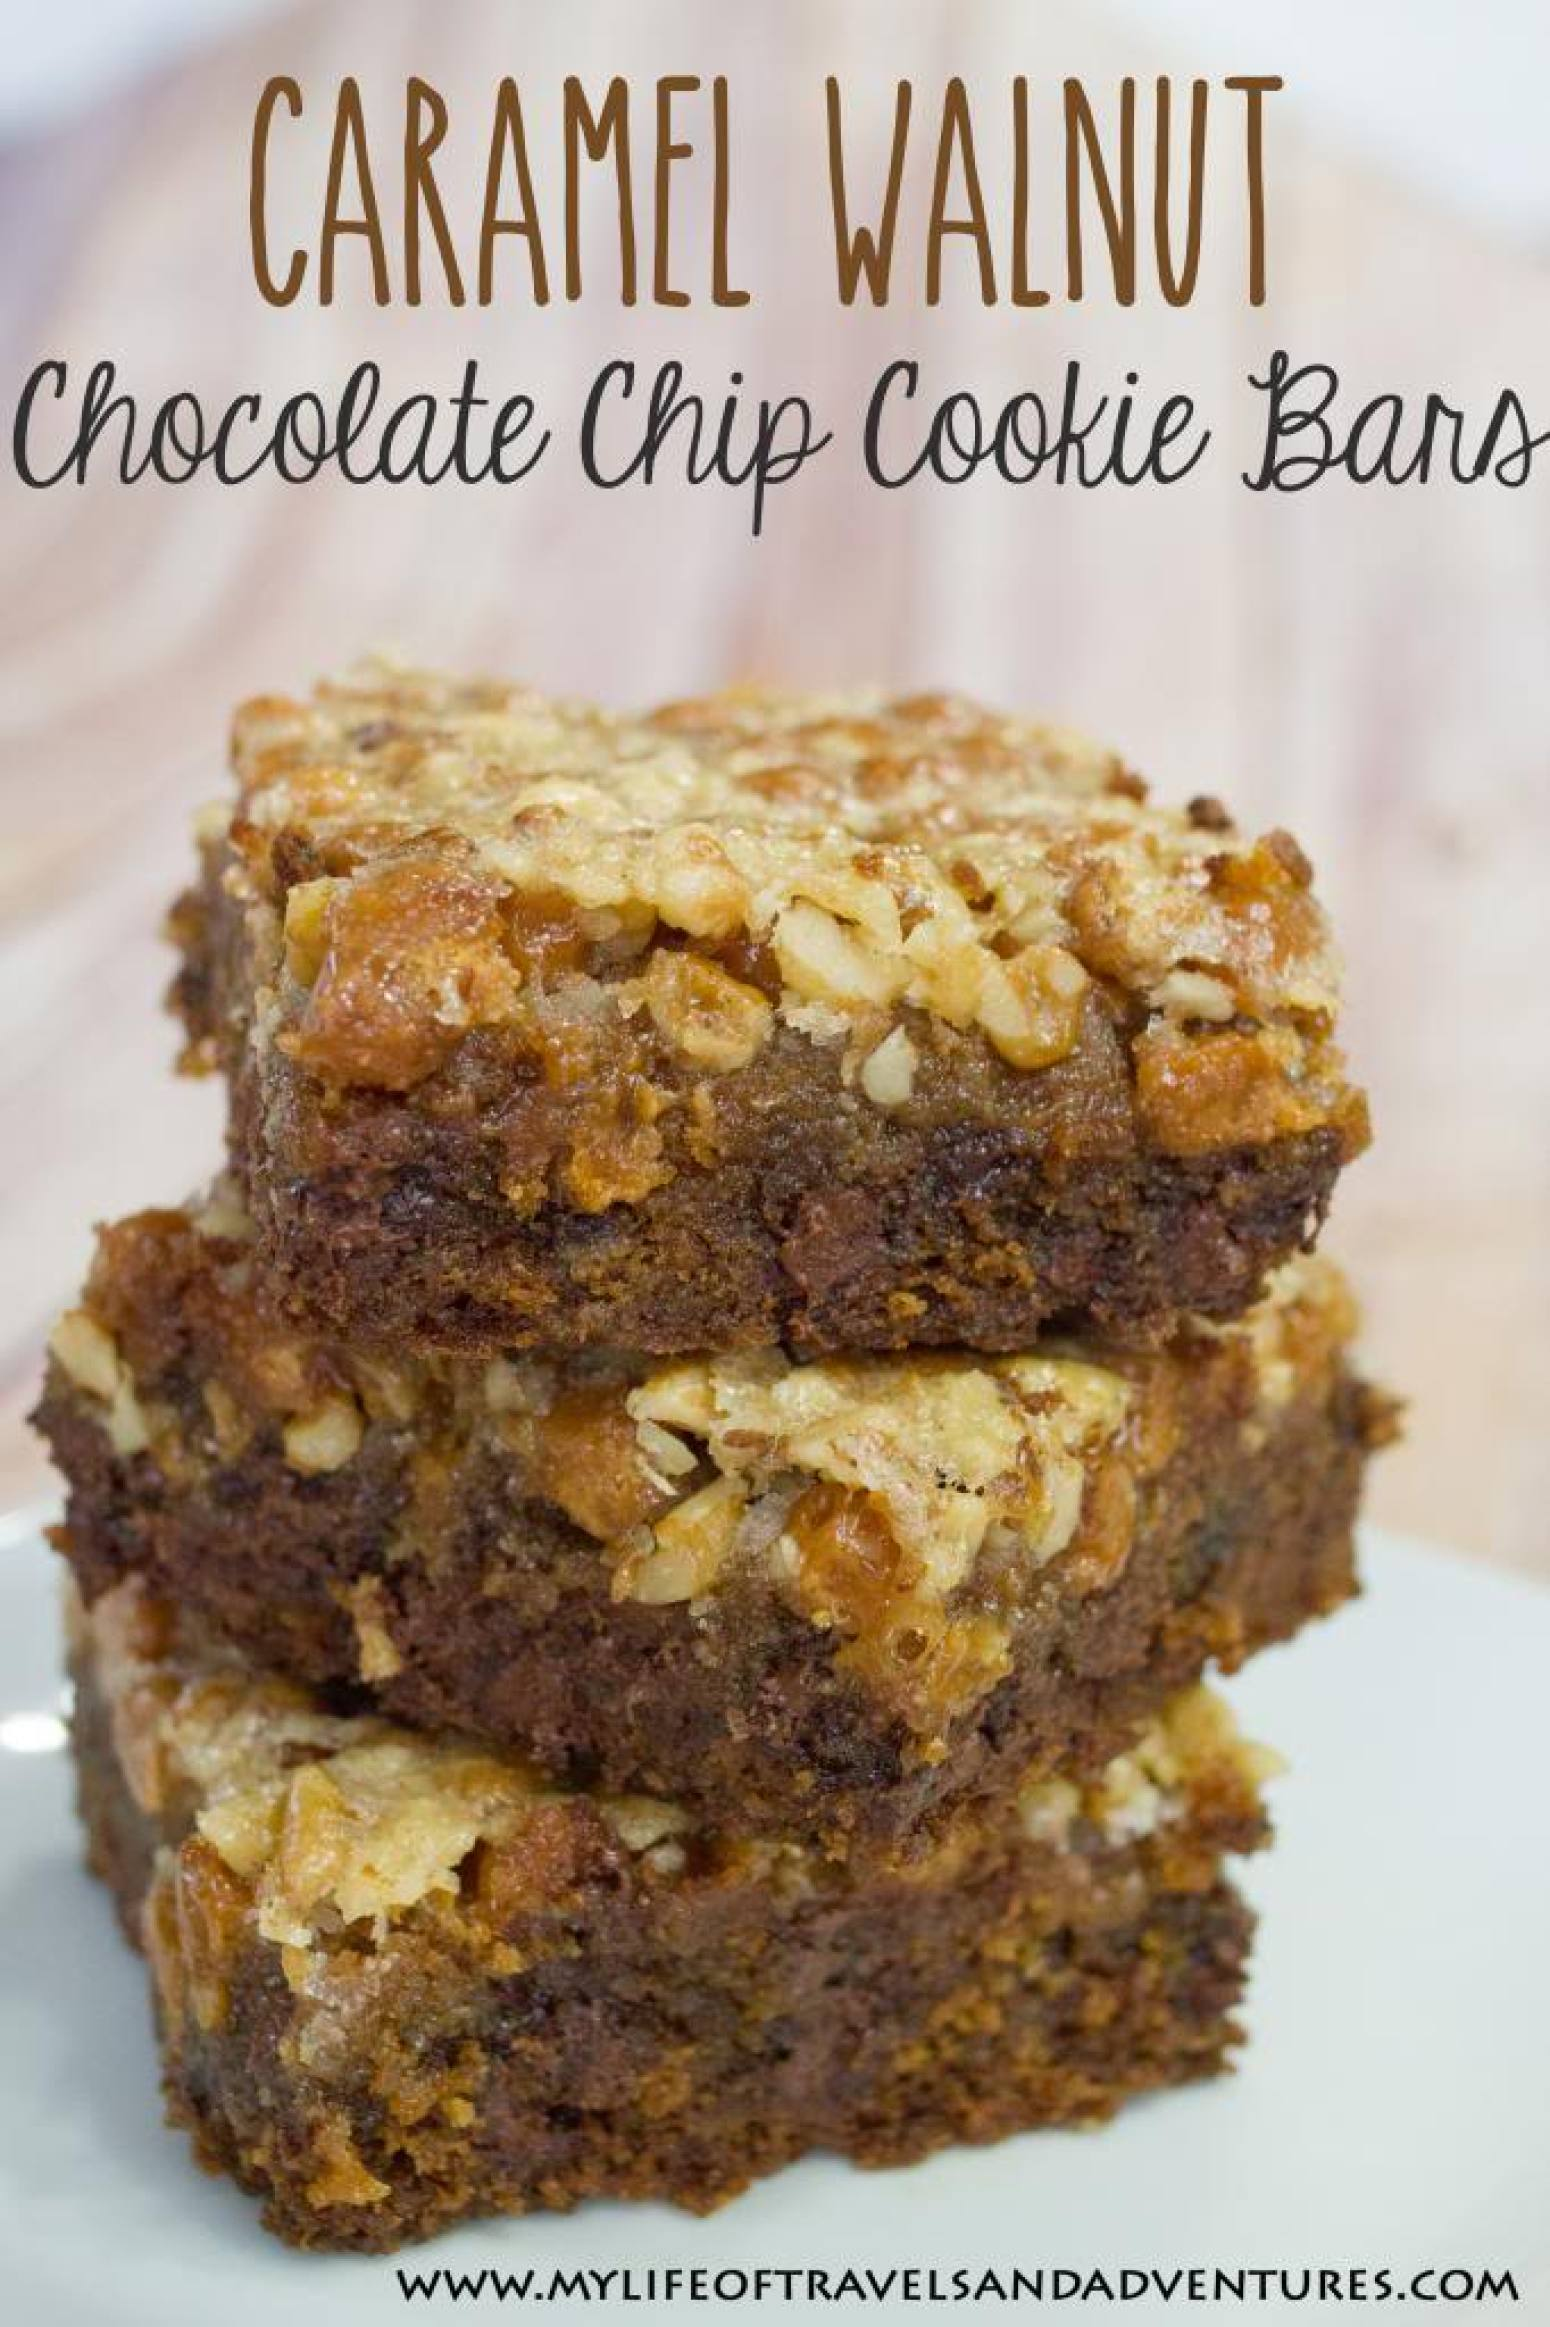 Caramel Walnut Chocolate Chip Cookie Bars Recipe | Just A ...